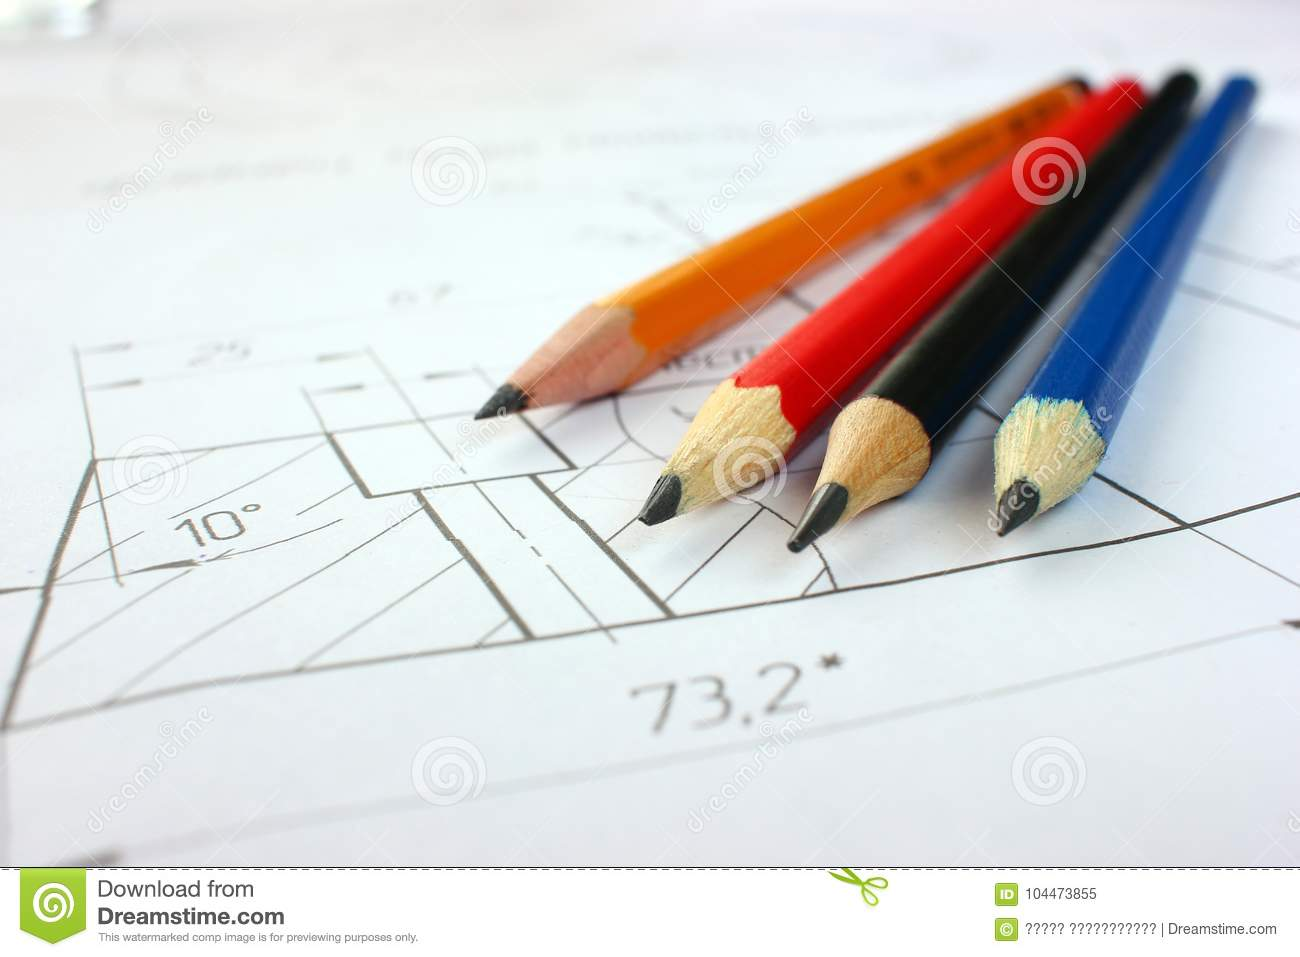 Open drawings with a pencil. Engineering and design. Construction projects